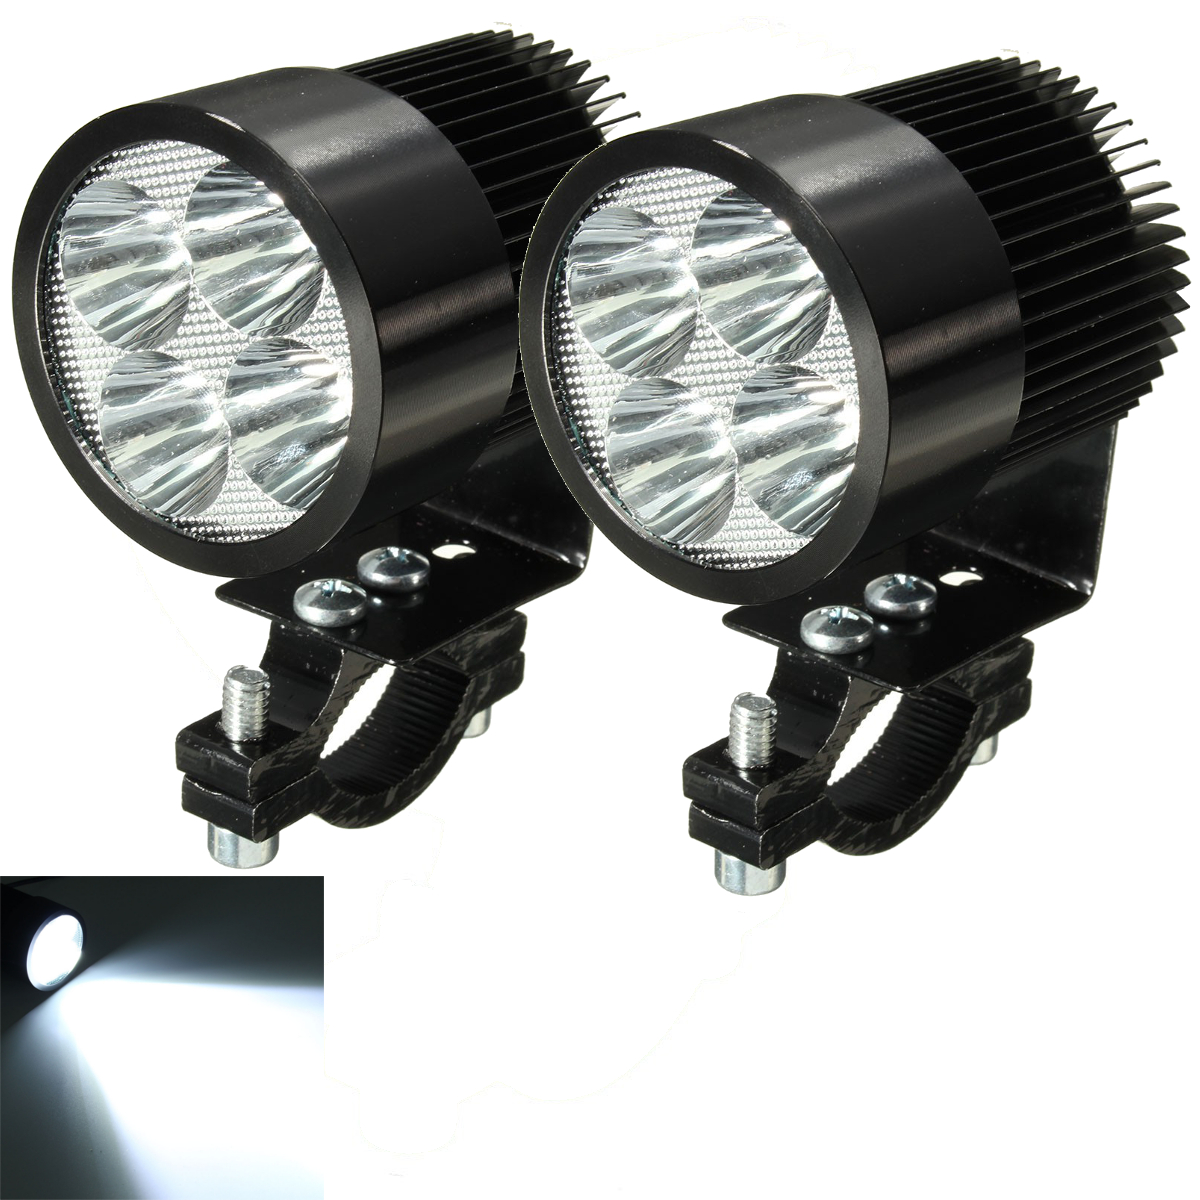 Led Spotlight Headlamp: Other Parts & Accessories